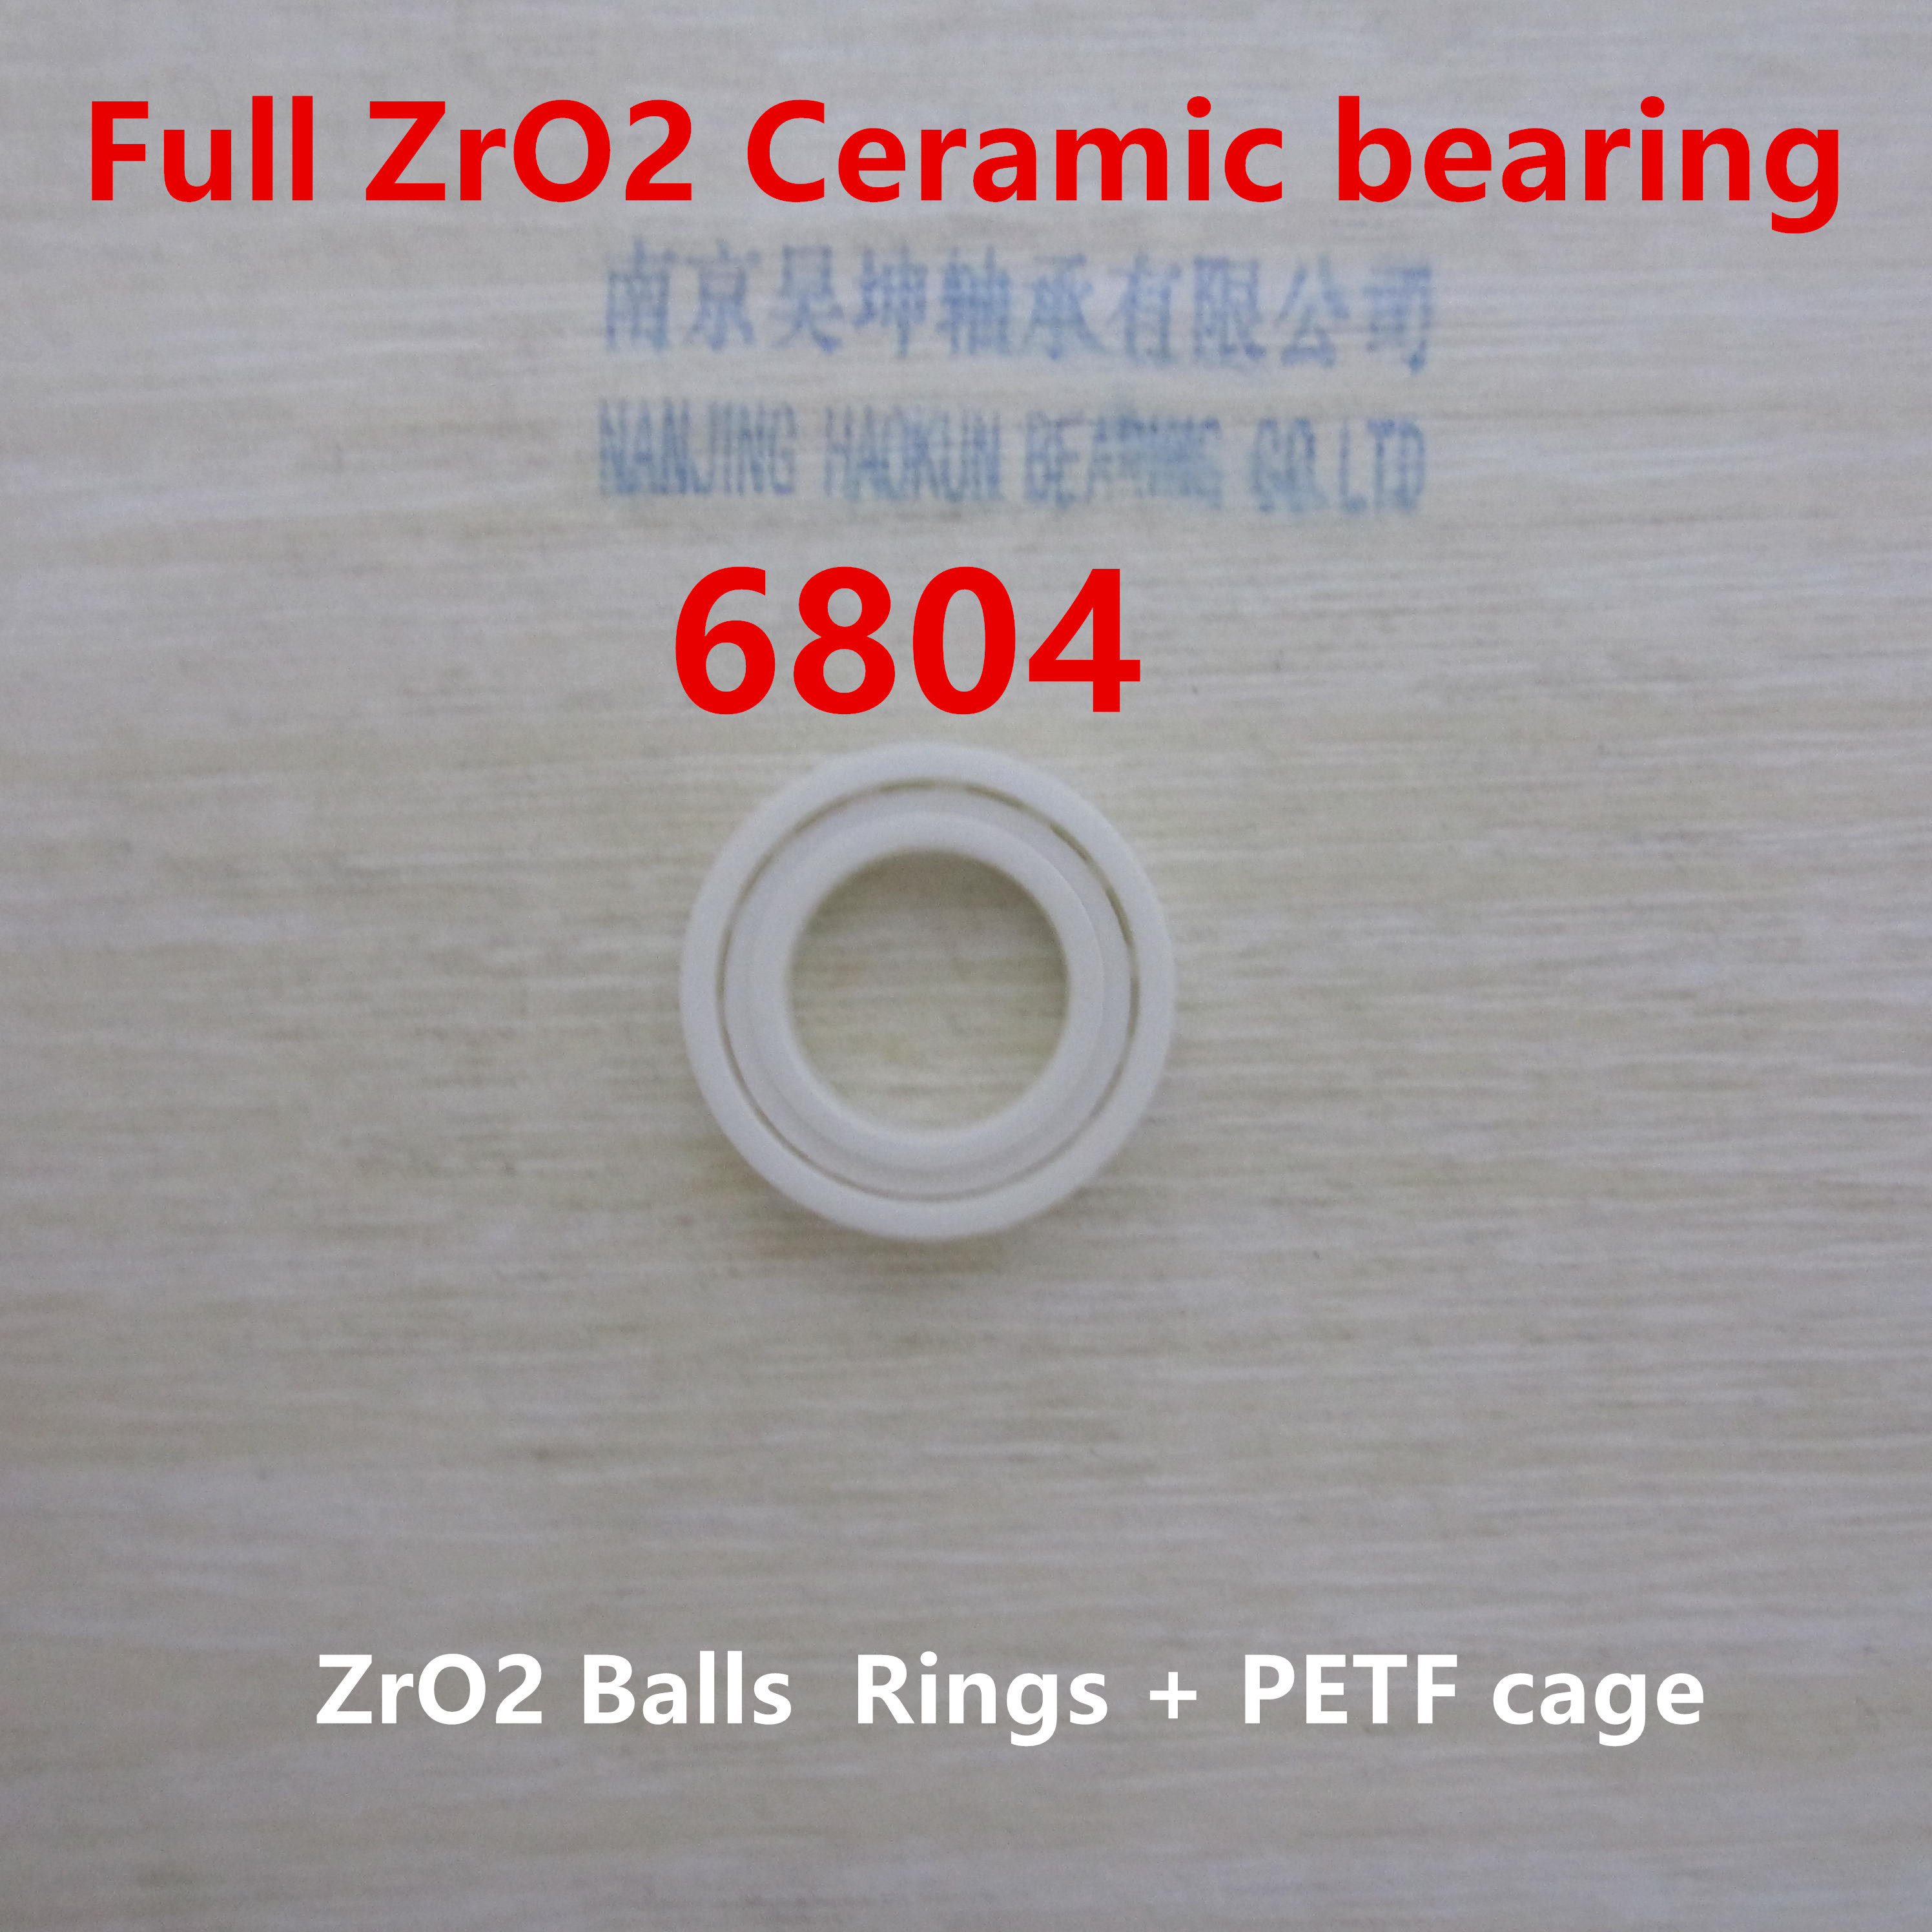 2017 Limited New Thrust Bearing Rolamentos Rodamientos 61804 6804cb Zro2 20*32*7mm Deep Groove Ball Thin Section Bearing 6804 2018 hot sale time limited steel rolamentos 6821 2rs abec 1 105x130x13mm metric thin section bearings 61821 rs 6821rs